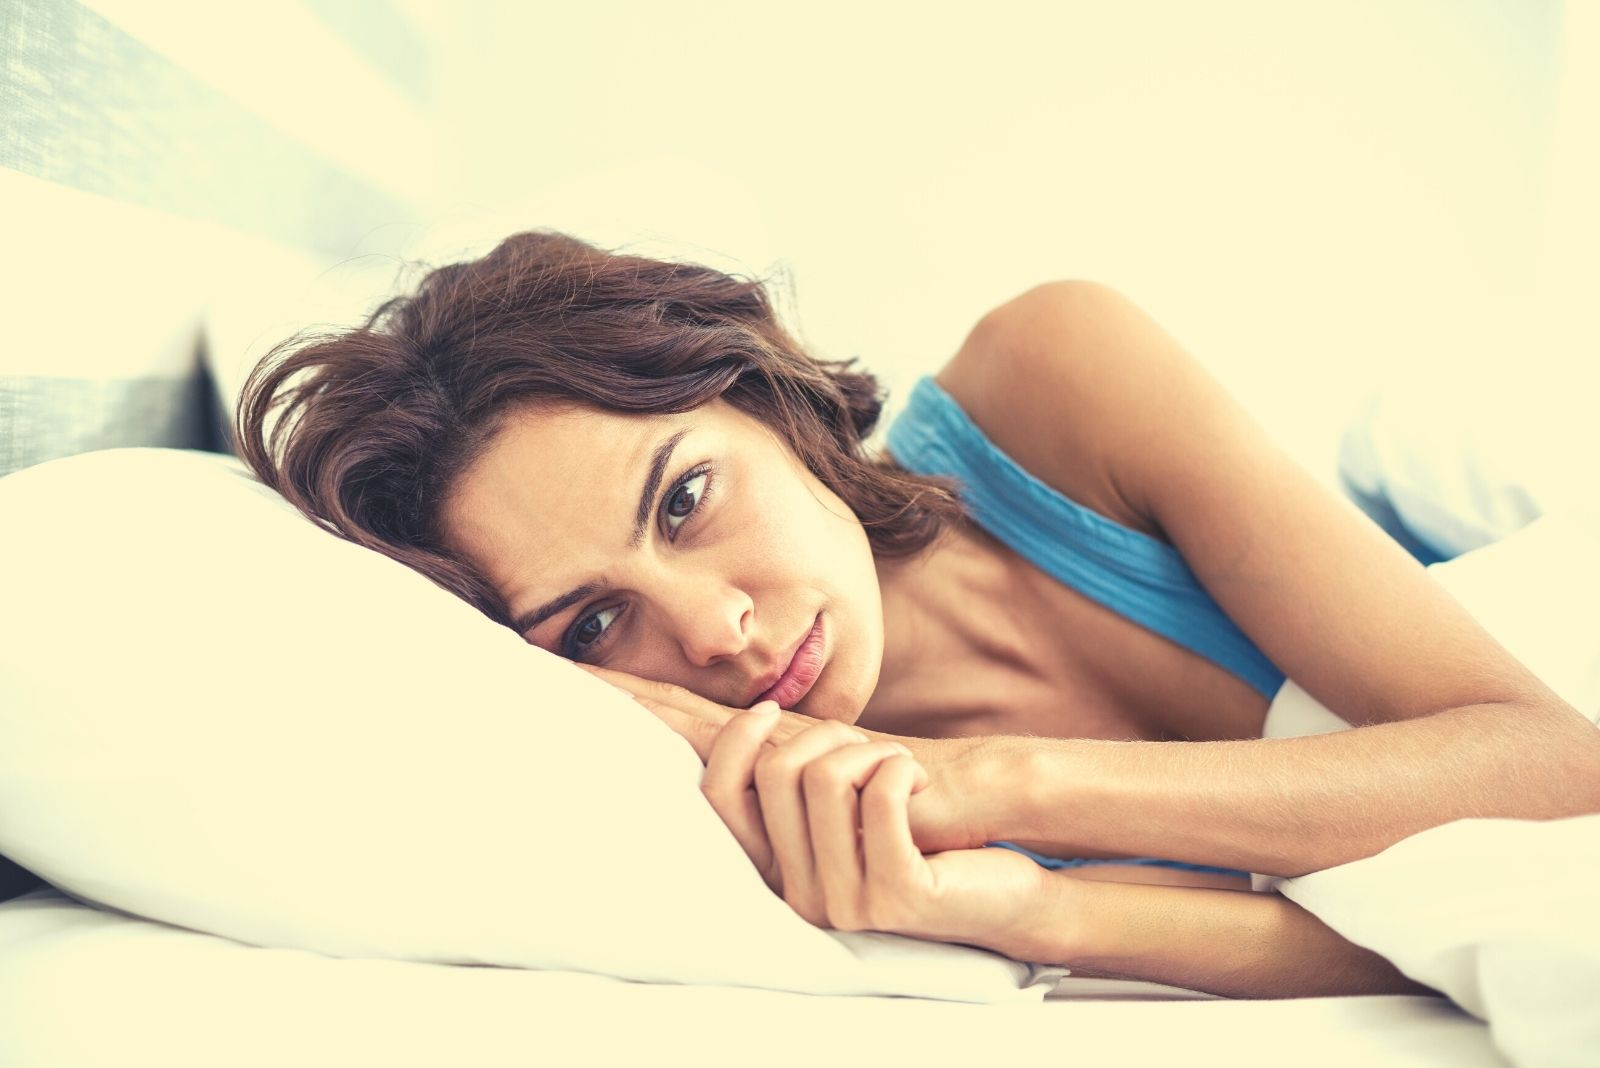 sad woman lying on her right side in bed wearing blue tank top